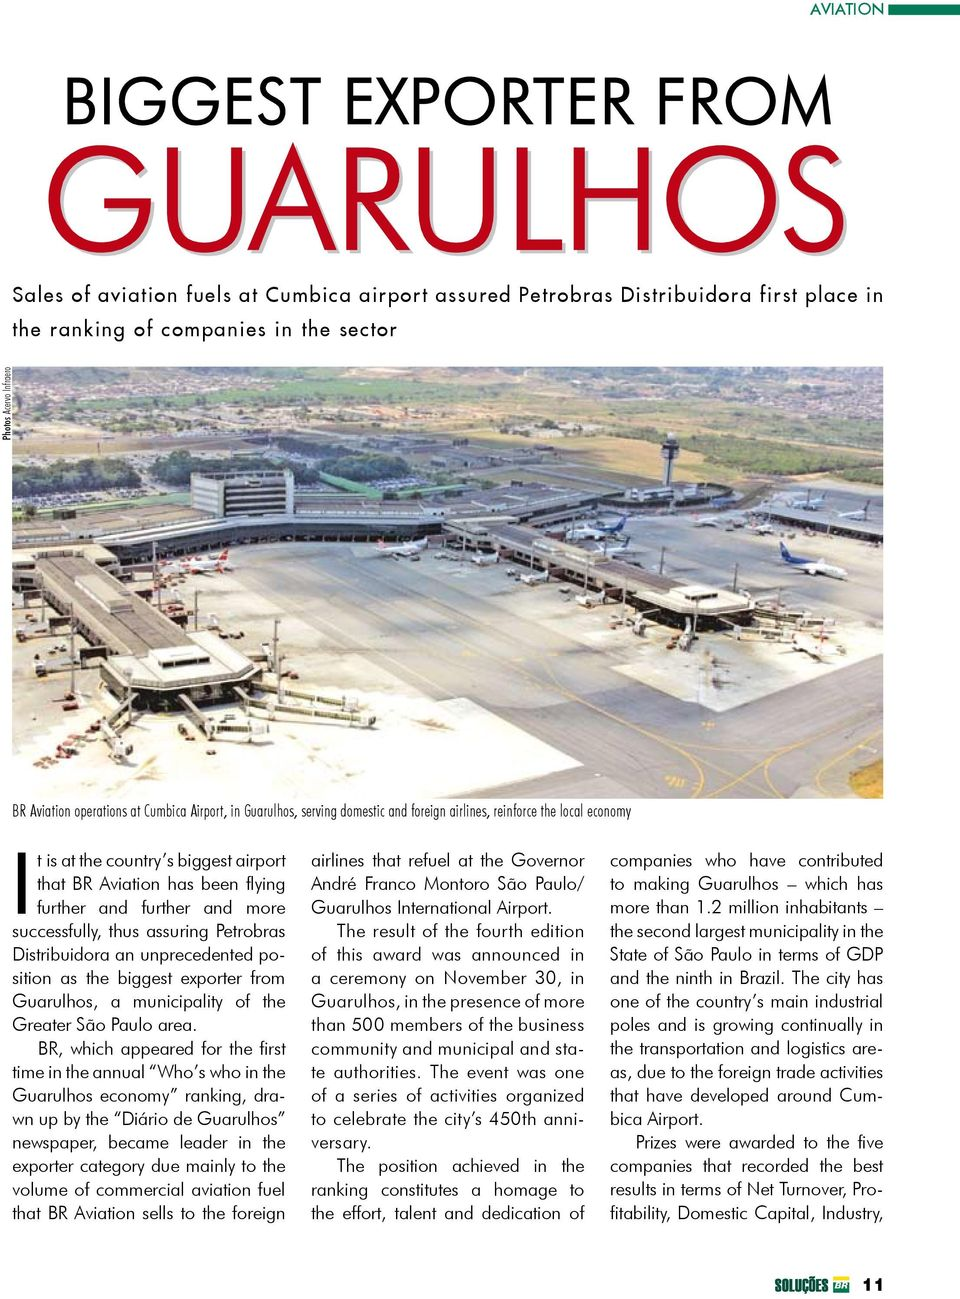 flying further and further and more successfully, thus assuring Petrobras Distribuidora an unprecedented position as the biggest exporter from Guarulhos, a municipality of the Greater São Paulo area.